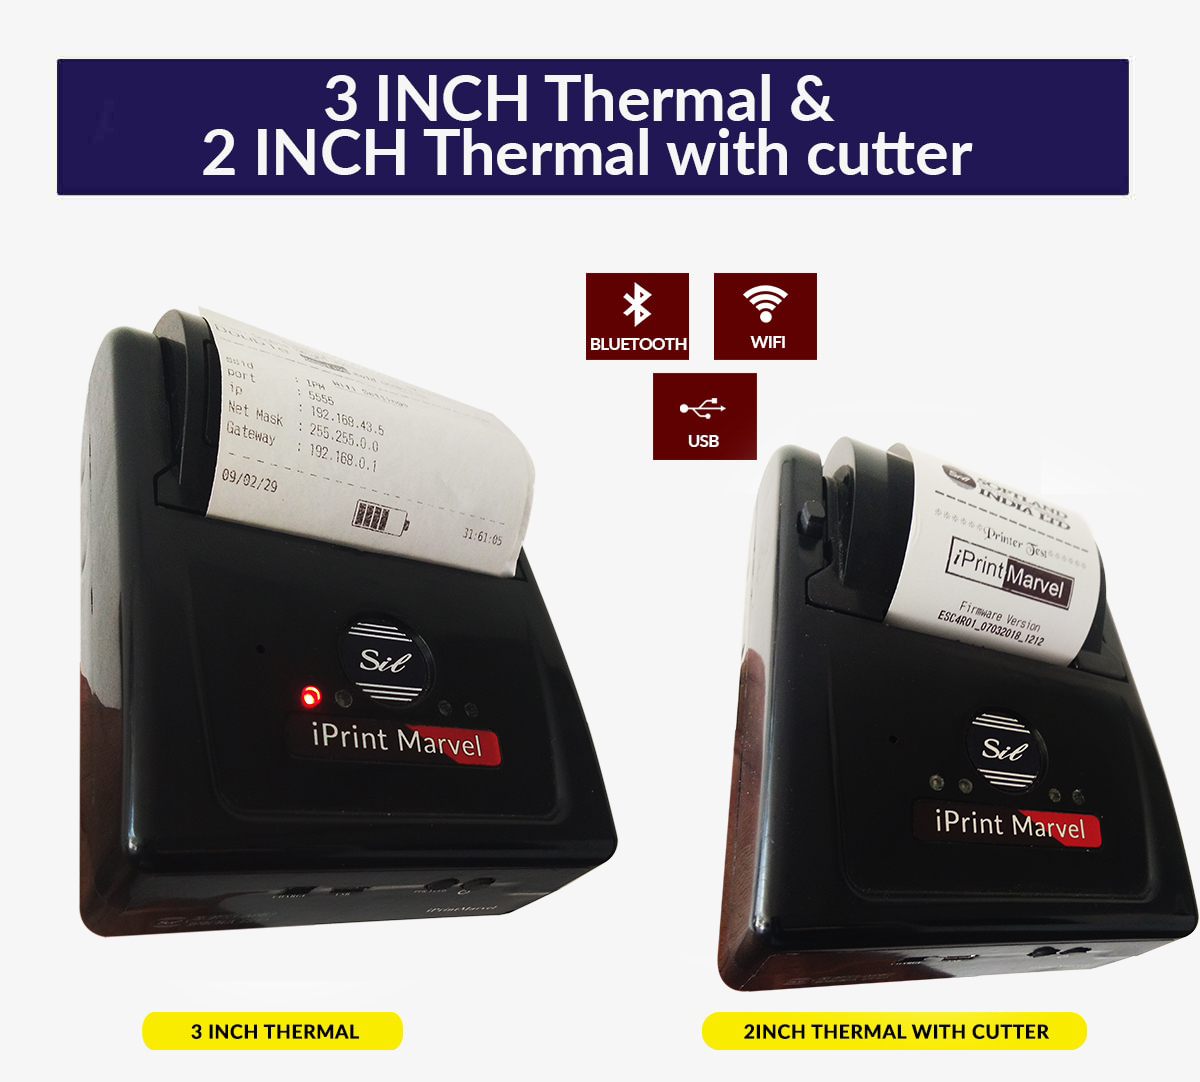 3 INCH Thermal & 2INCH Thermal With Cutter